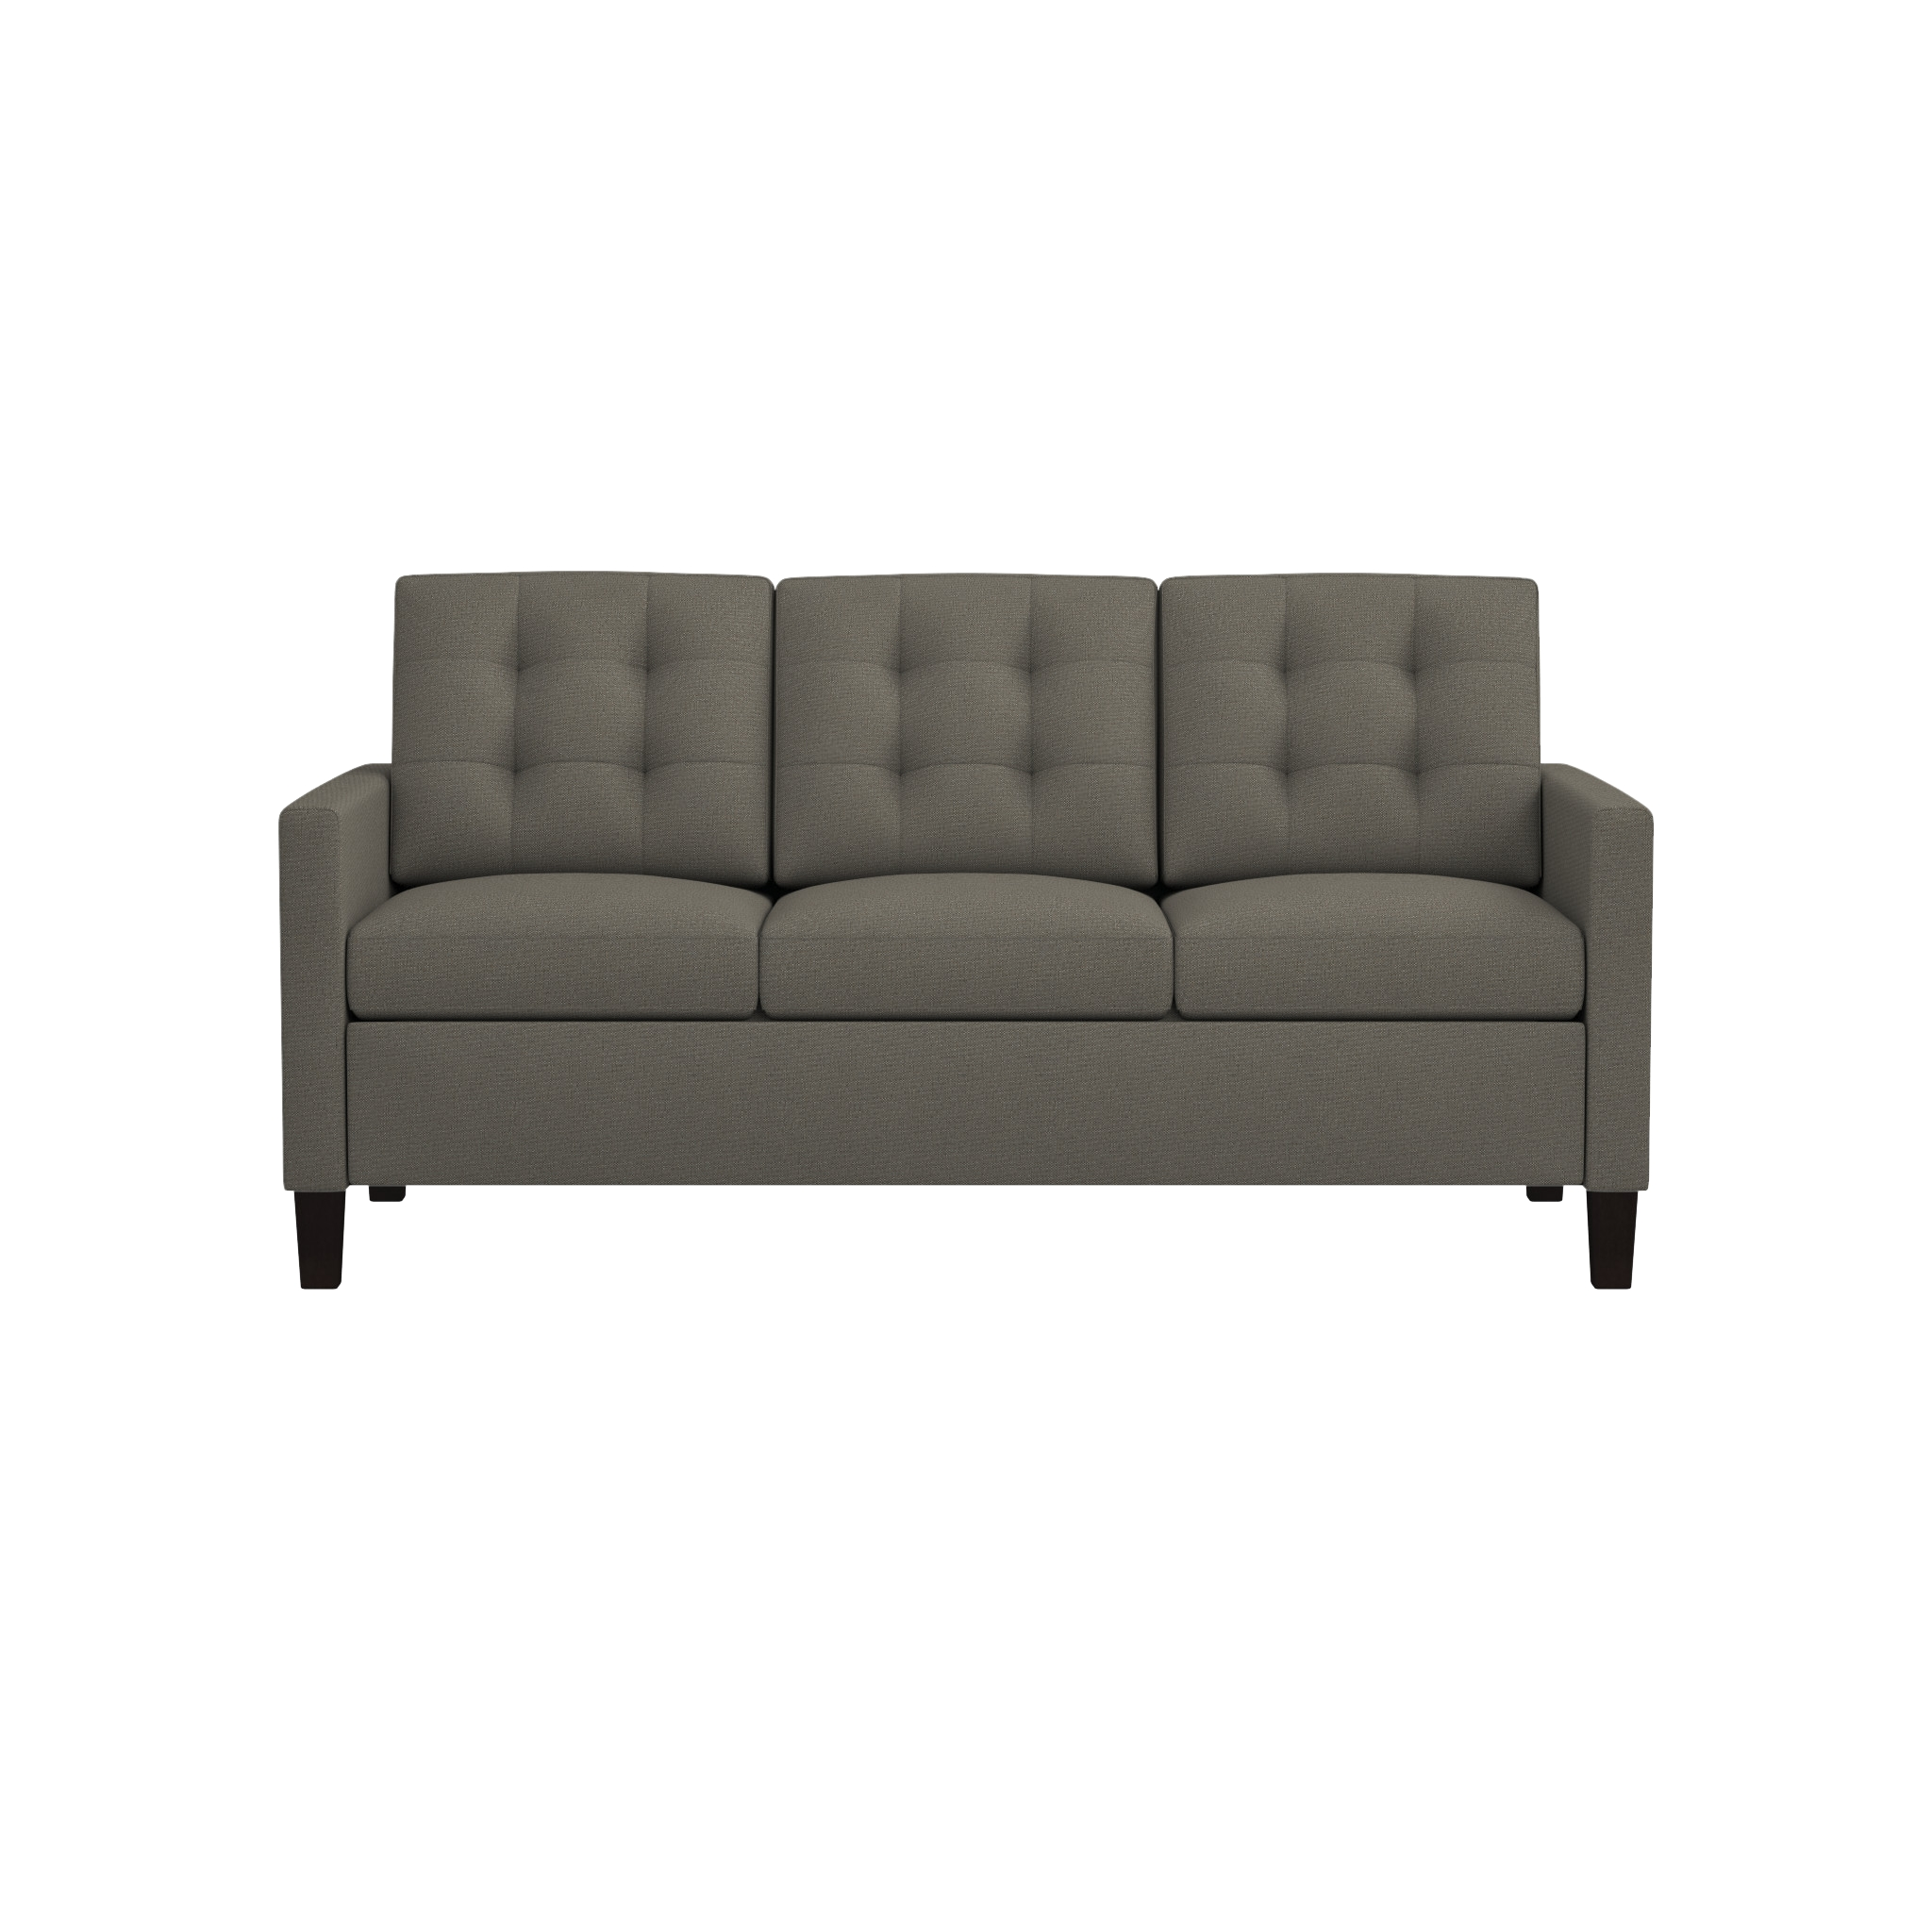 Crate And Barrel Sofa Sleeper Images Salzburg Sectional